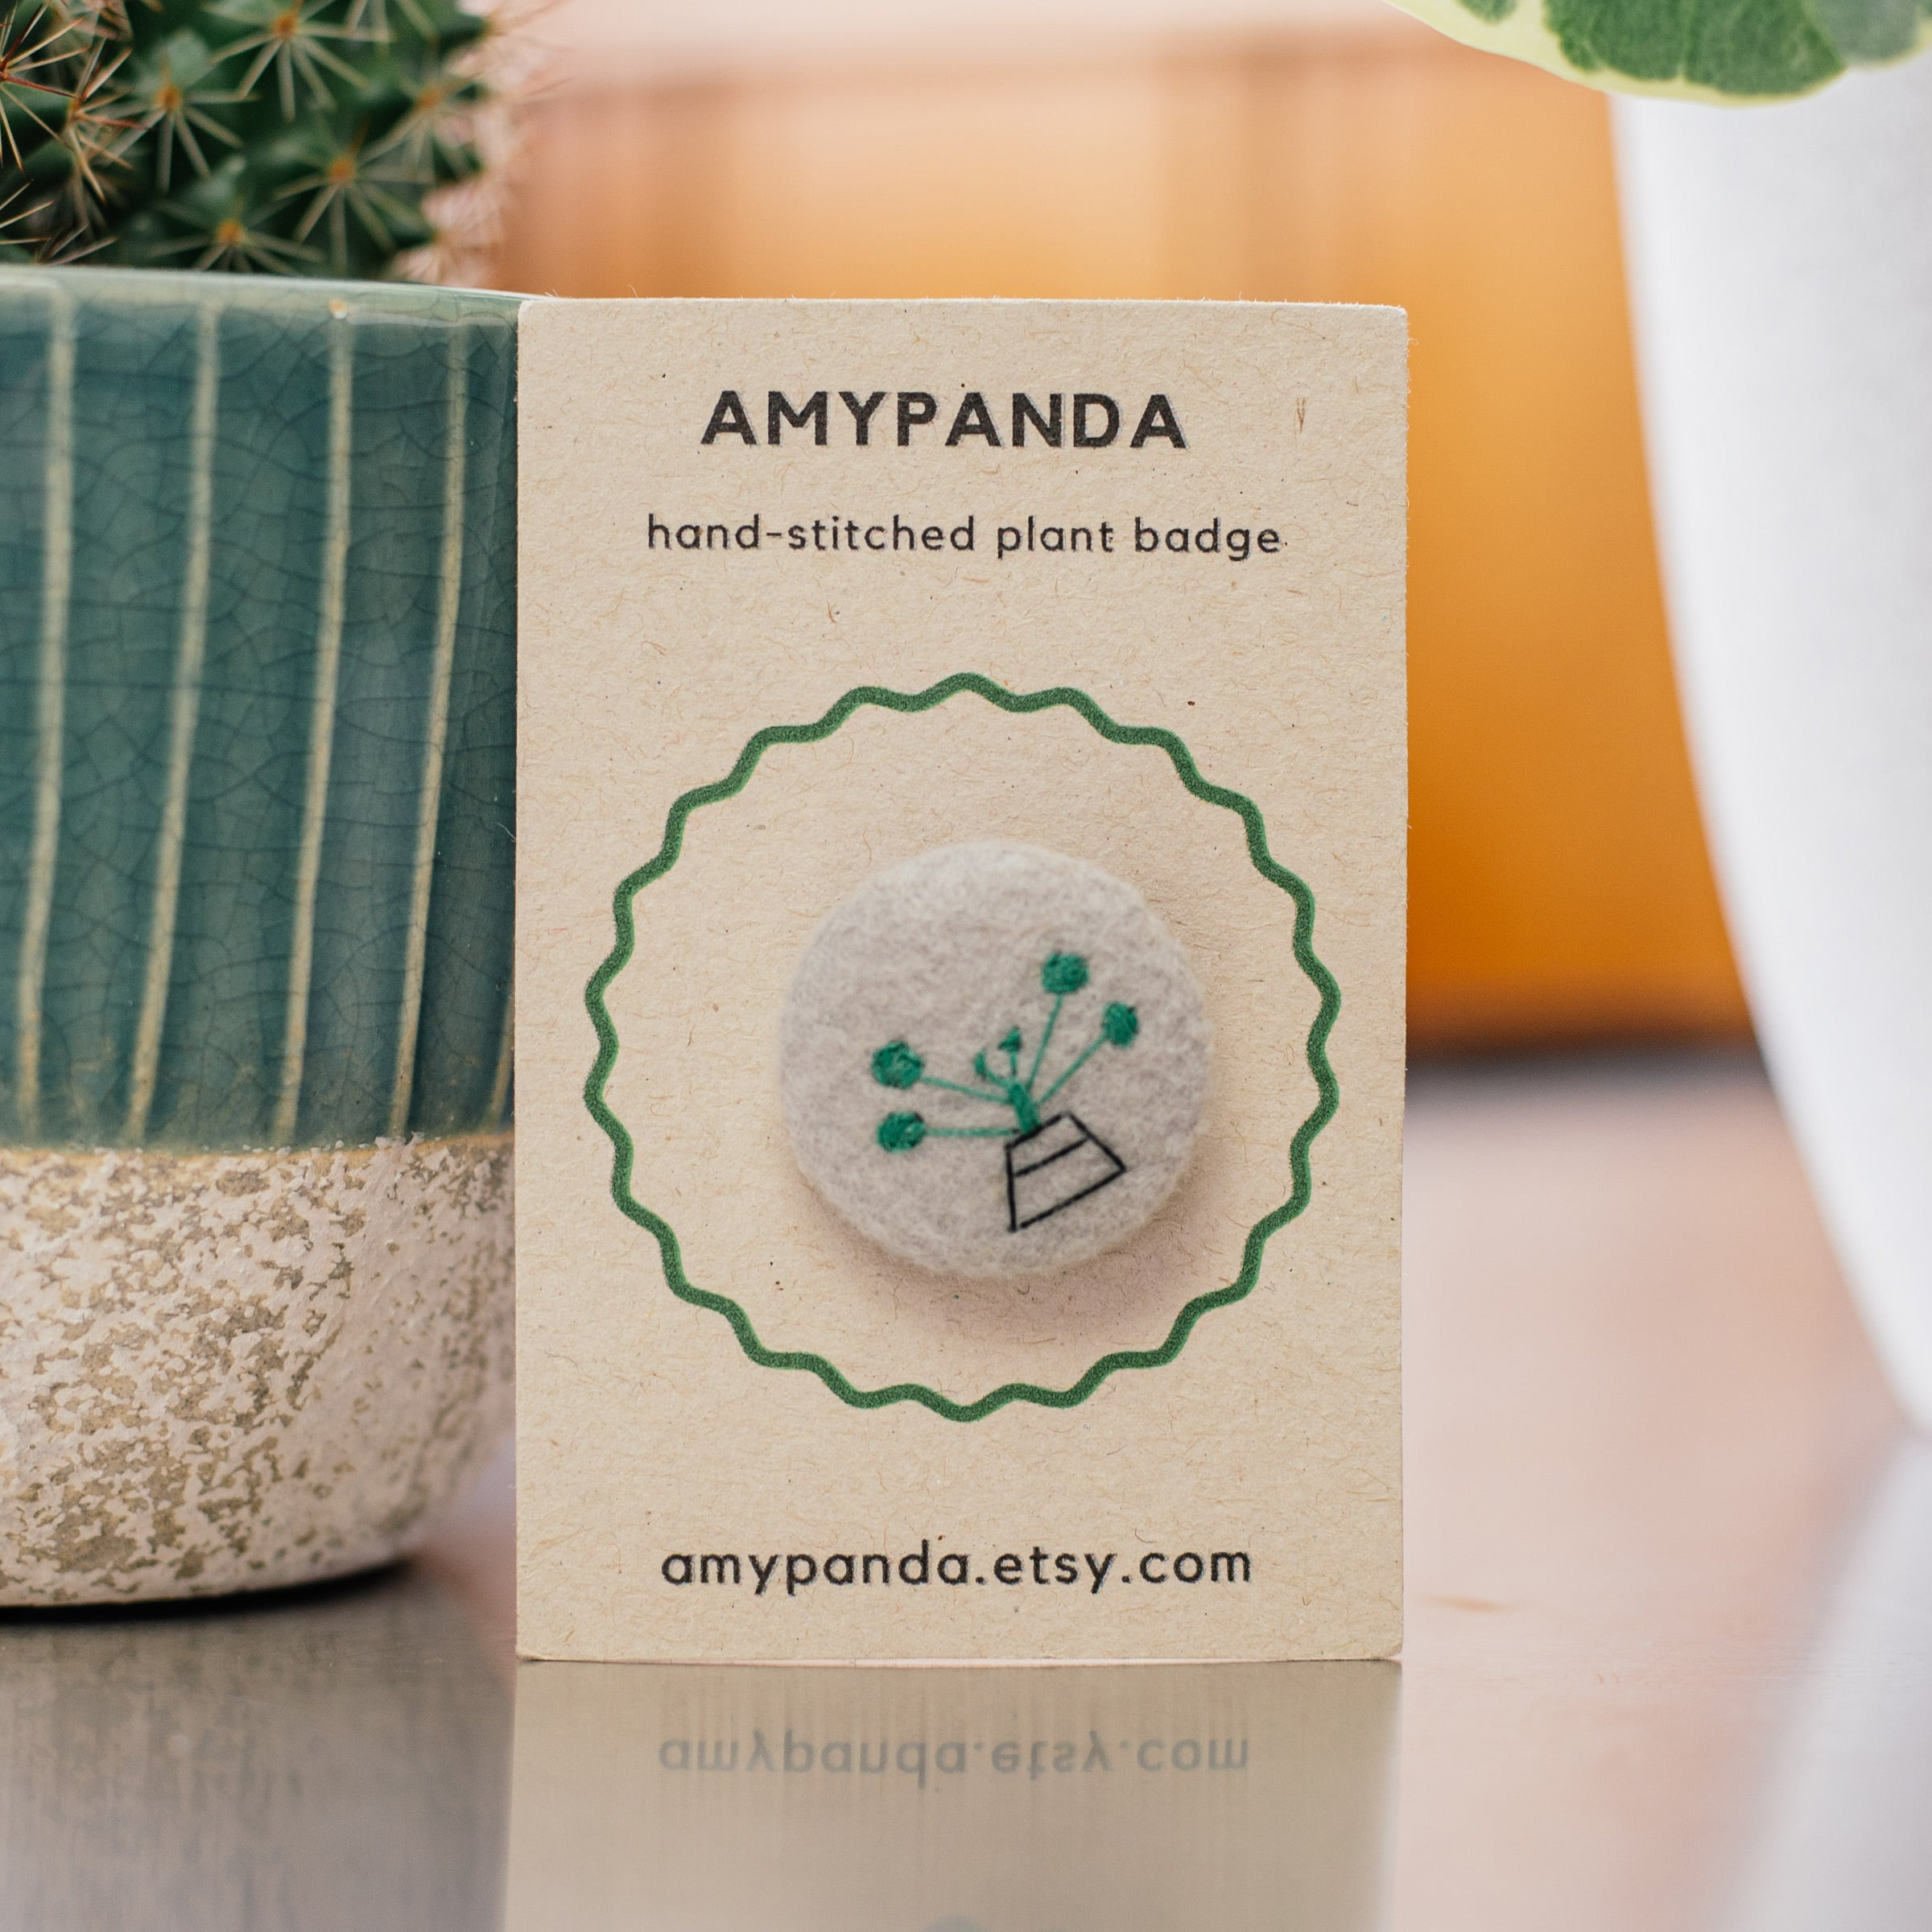 AmyPanda Hand-stitched Plant Badge — The Tetley Shop